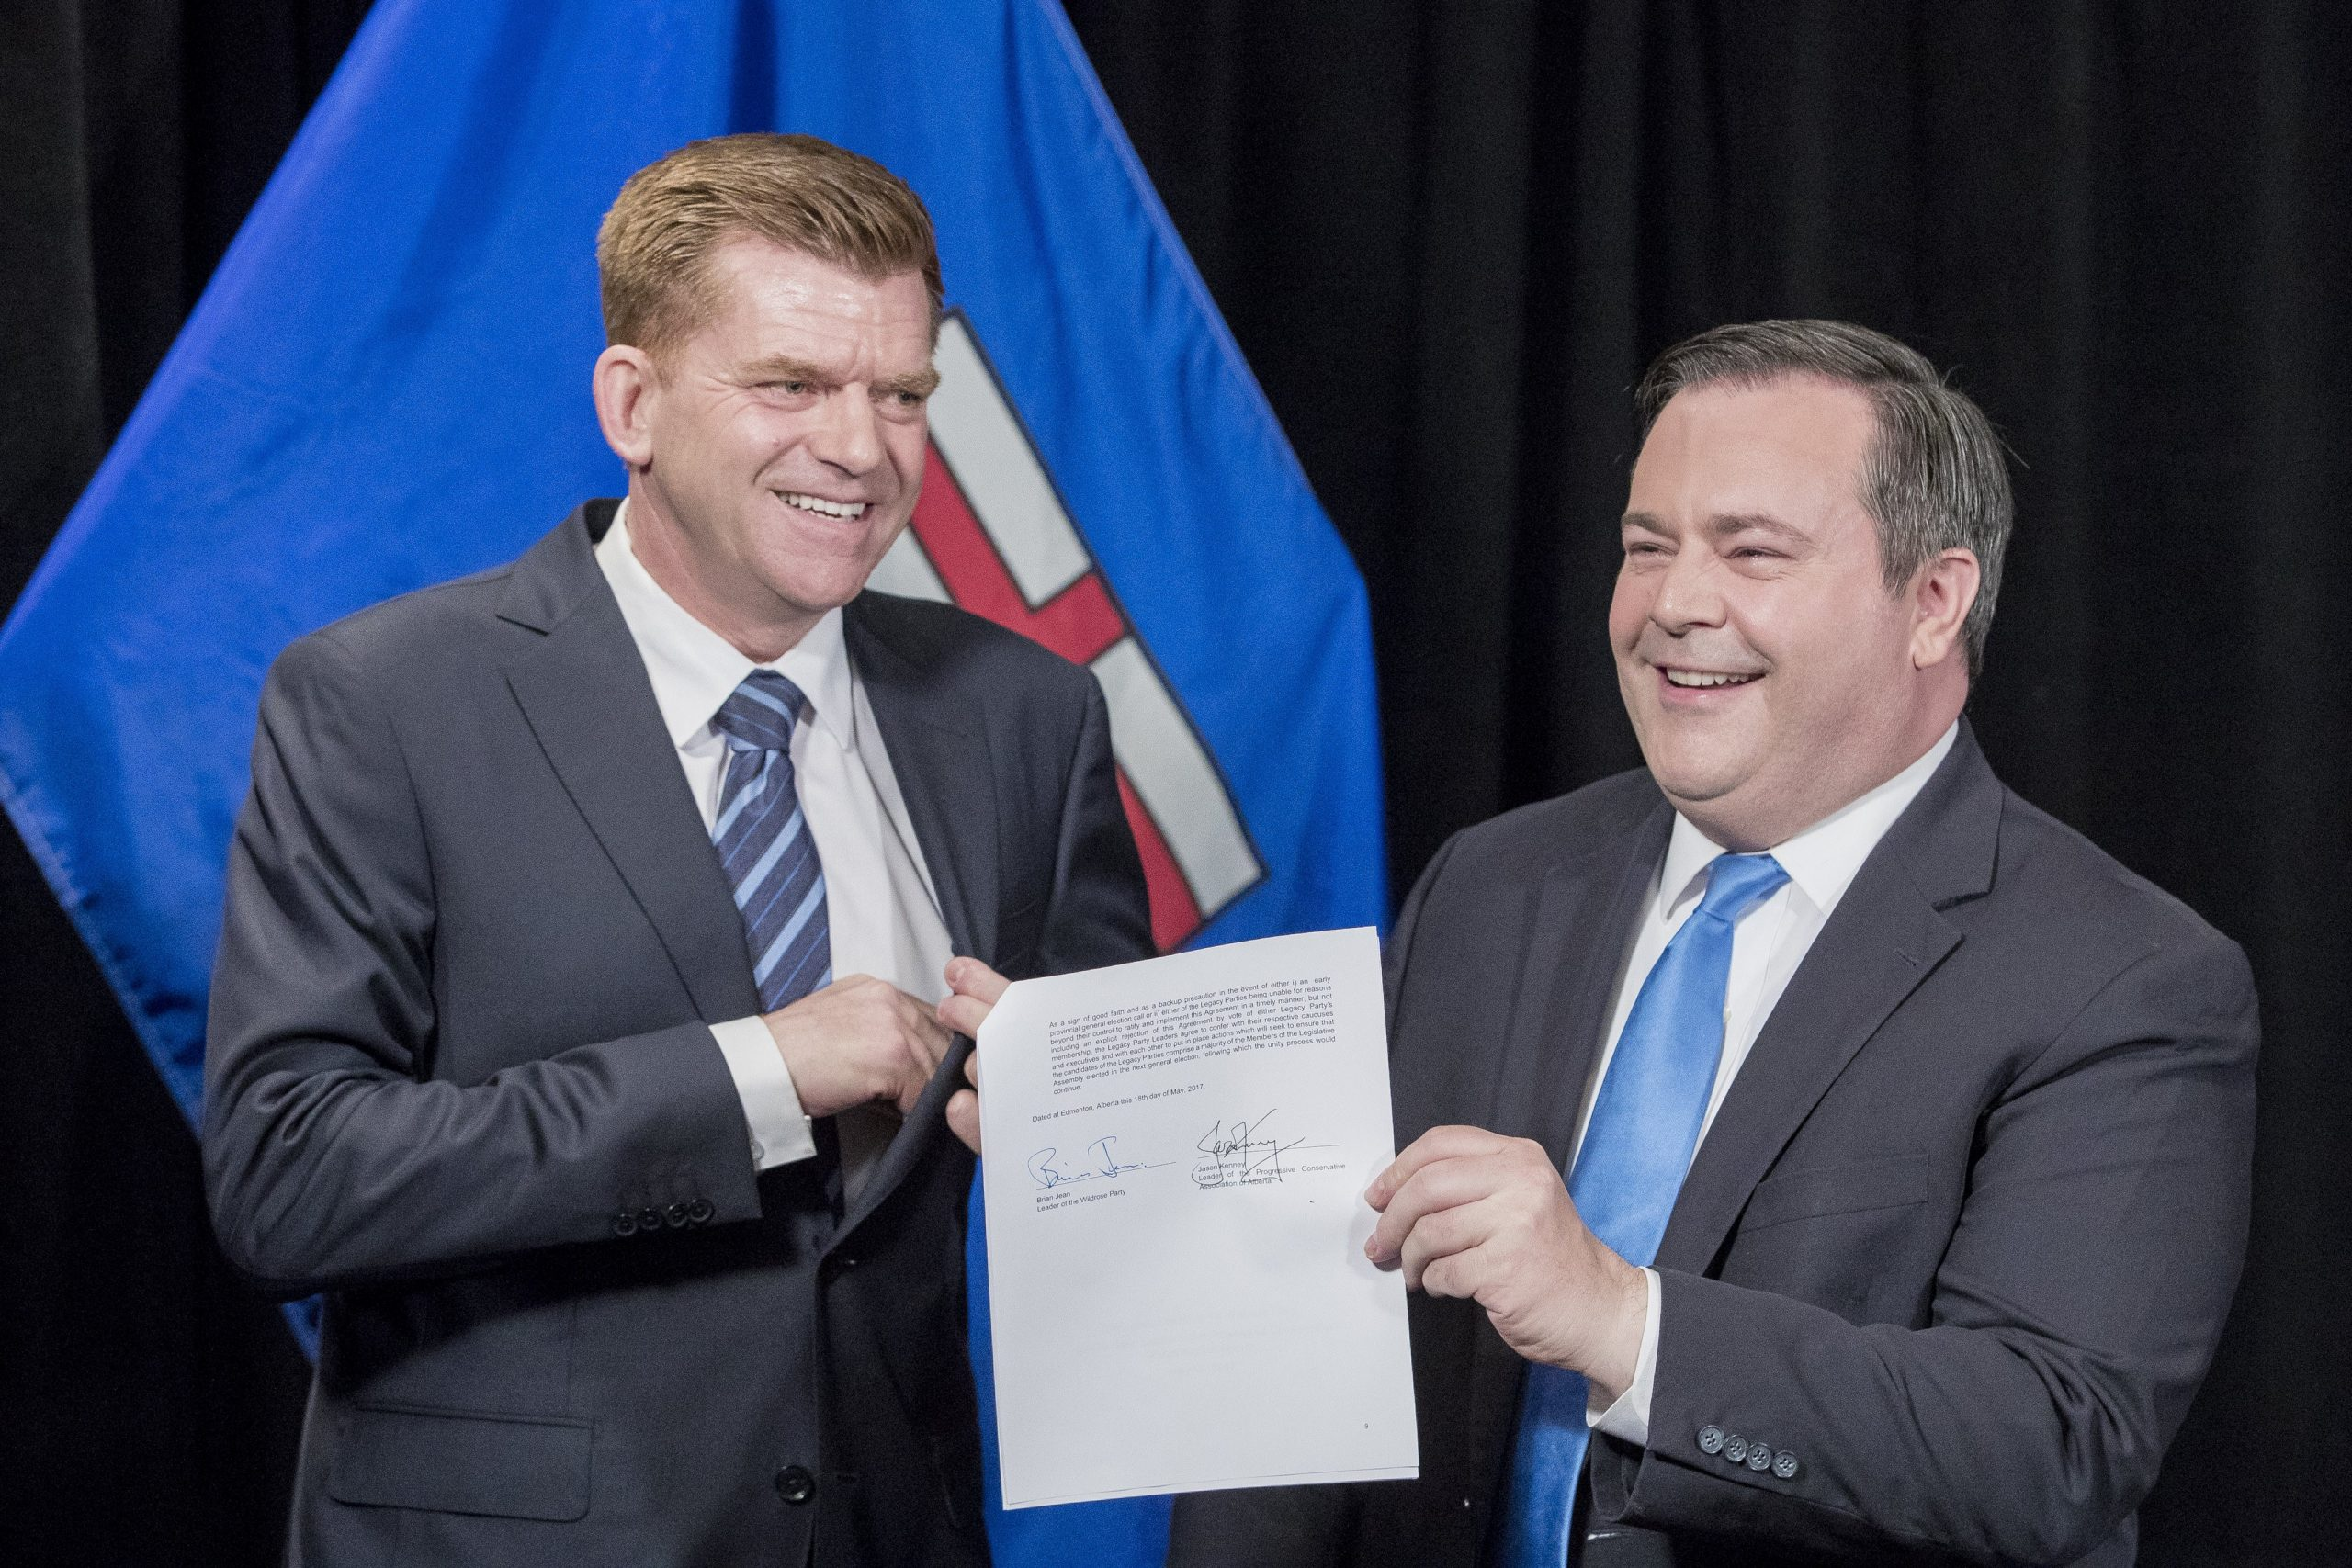 Wildrose and PC Parties Reveal Plans To Merge, Create United Conservative Party